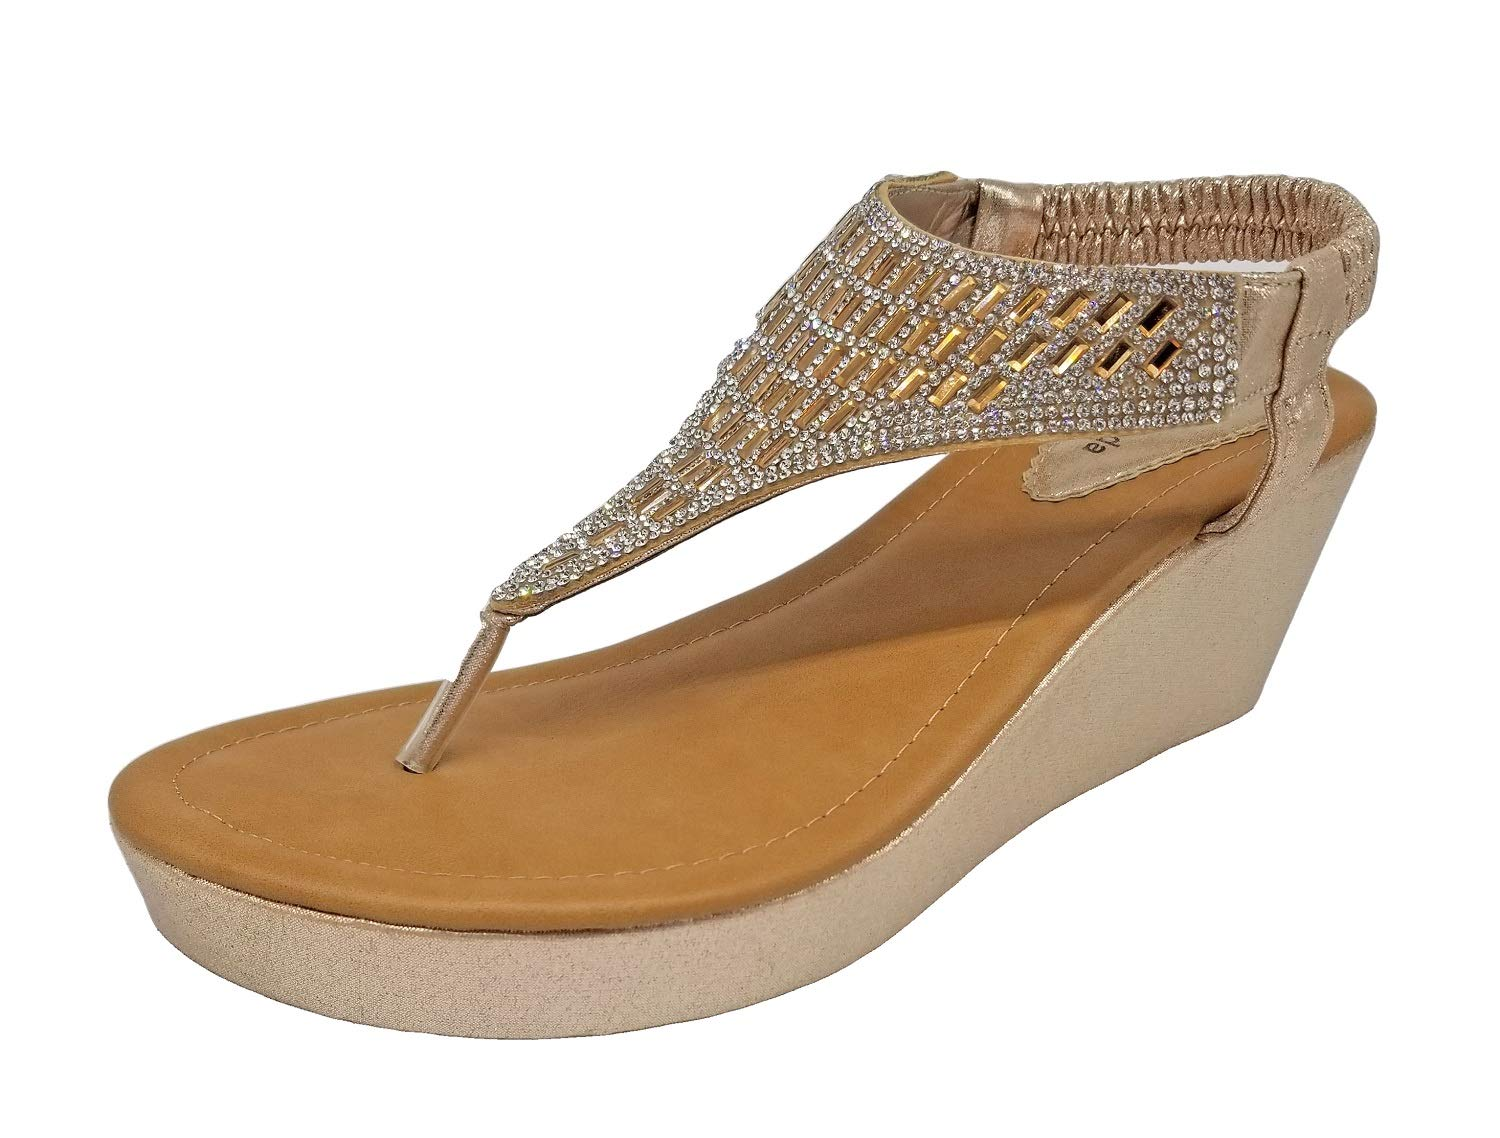 Top Moda OR-26 Women's Wedge Sandals Champagne 8.5 B(M) US